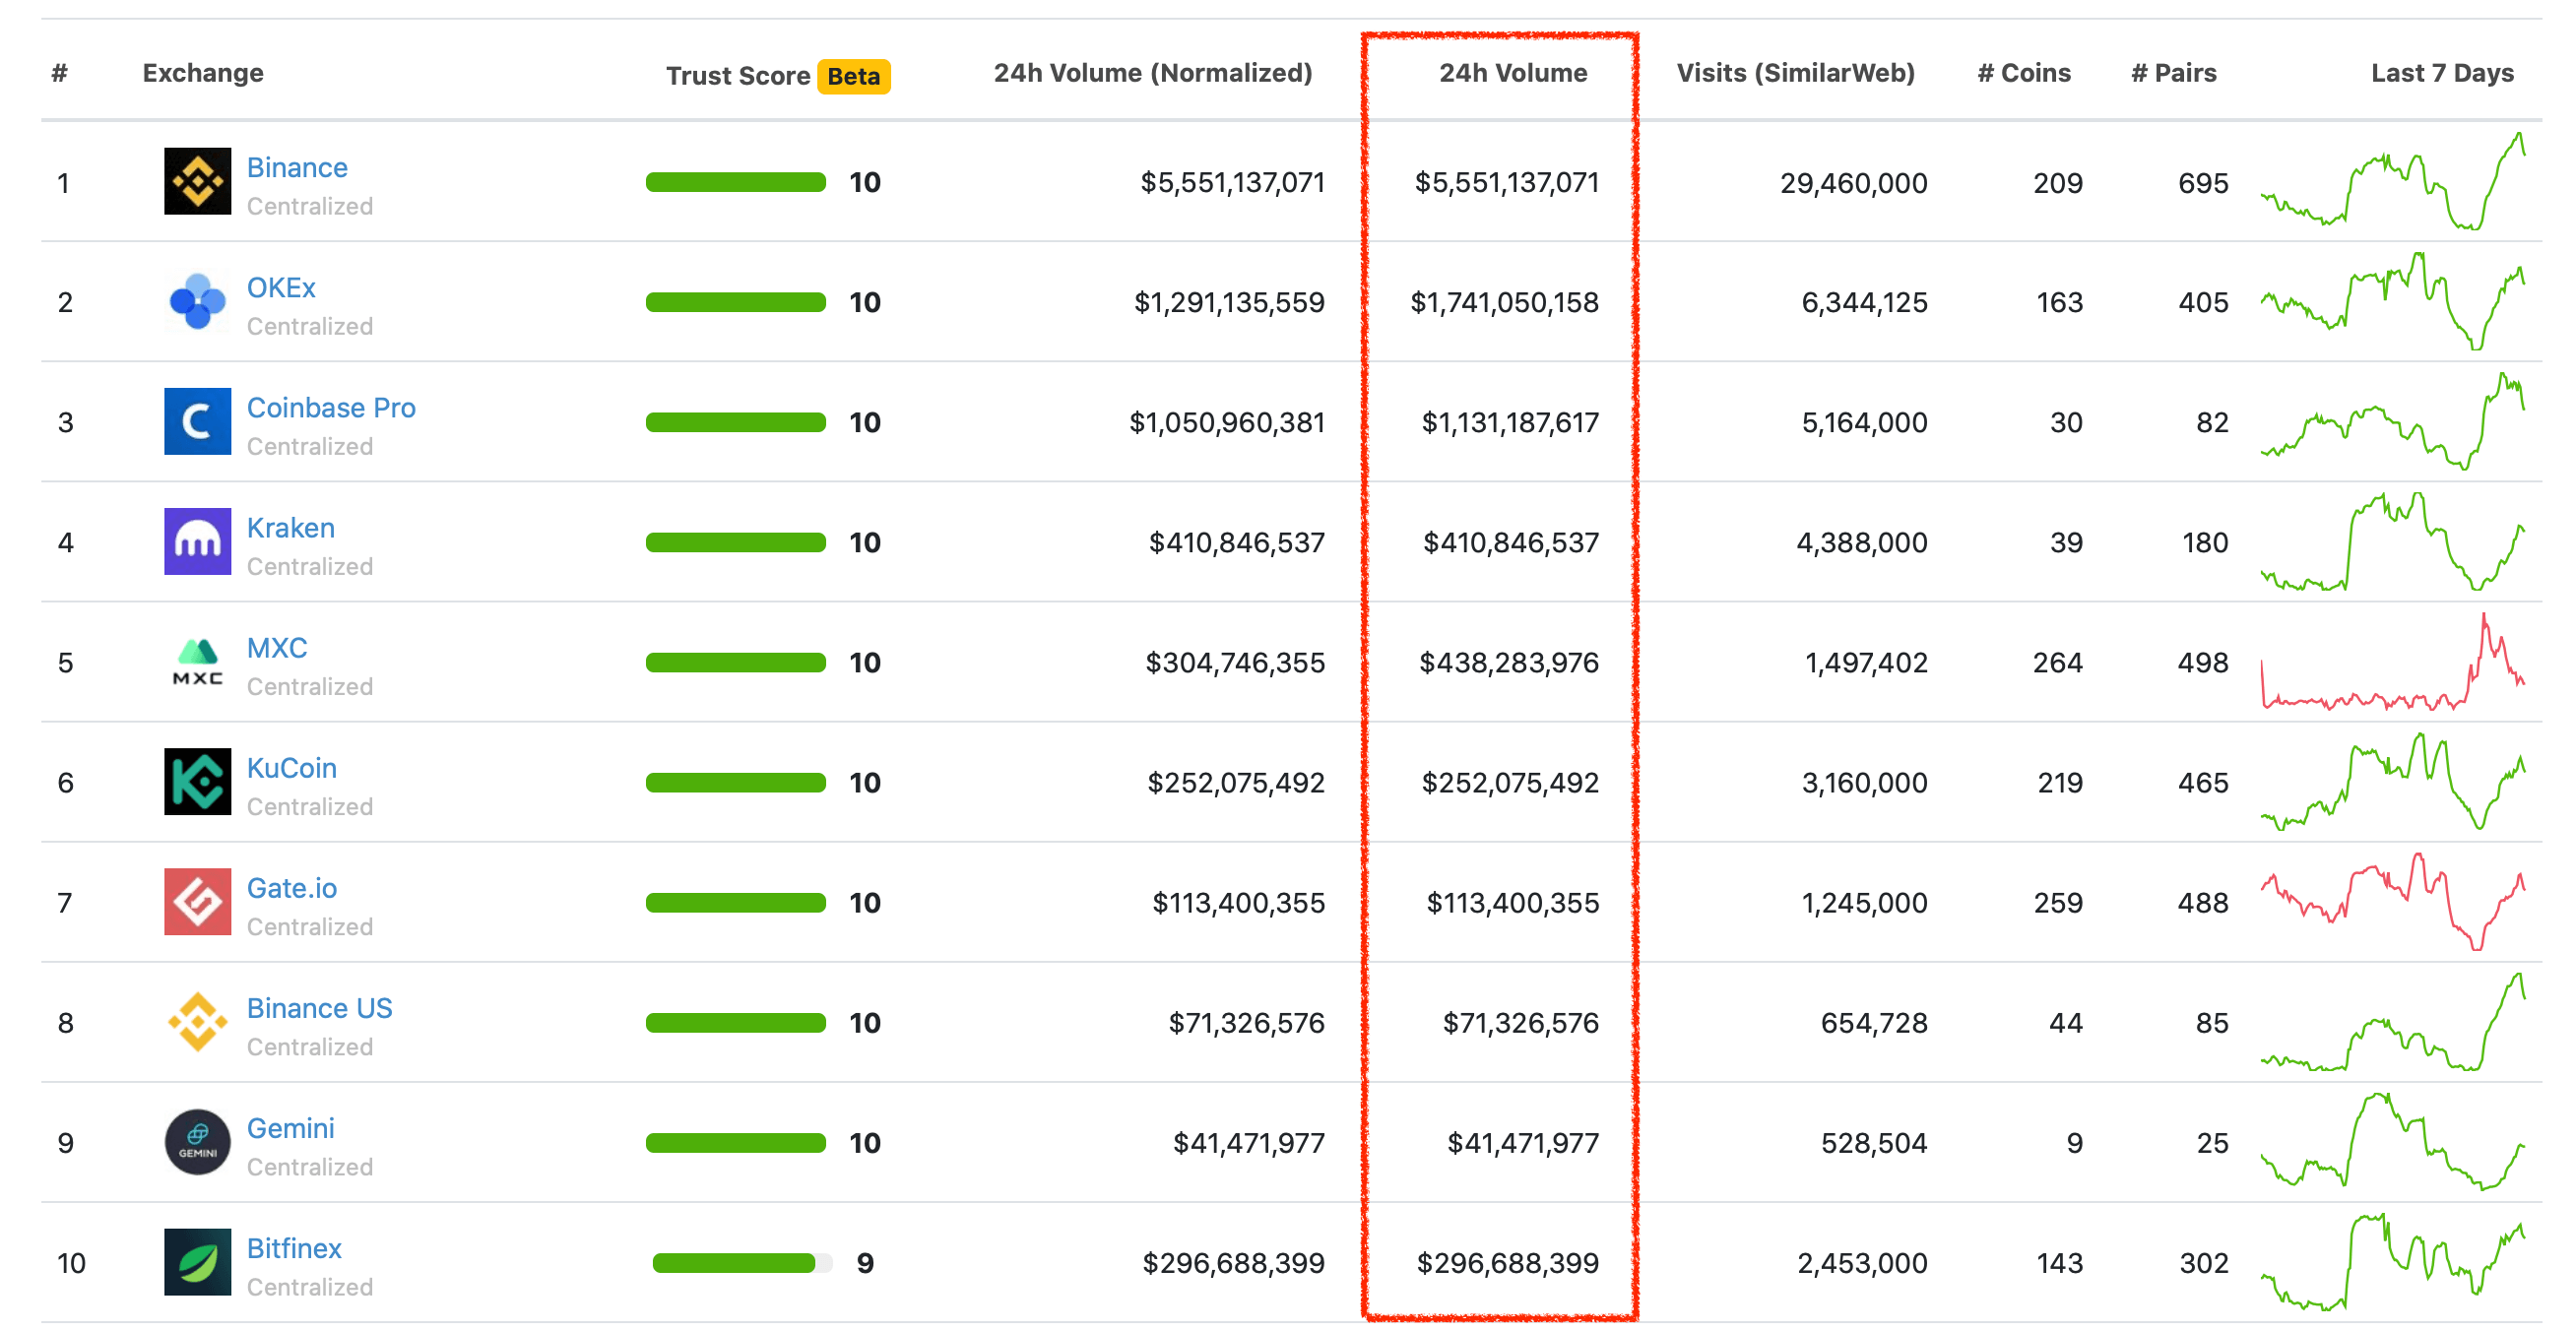 Trading volumes of cryptocurrency exchanges